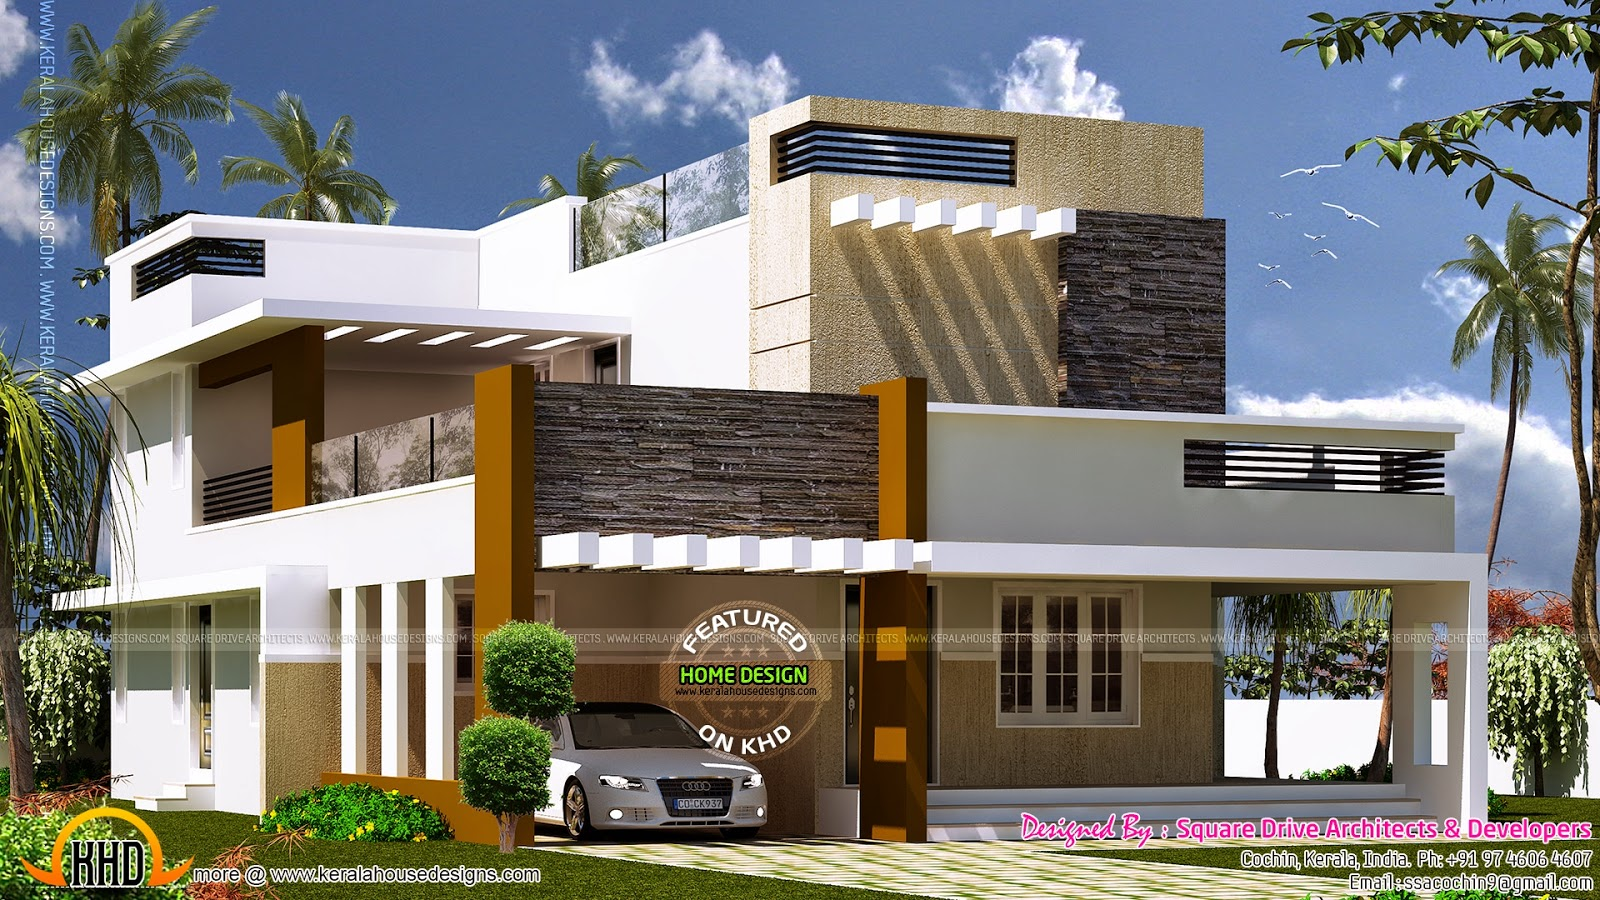 Exterior design of contemporary villa kerala home design for Contemporary home design exterior